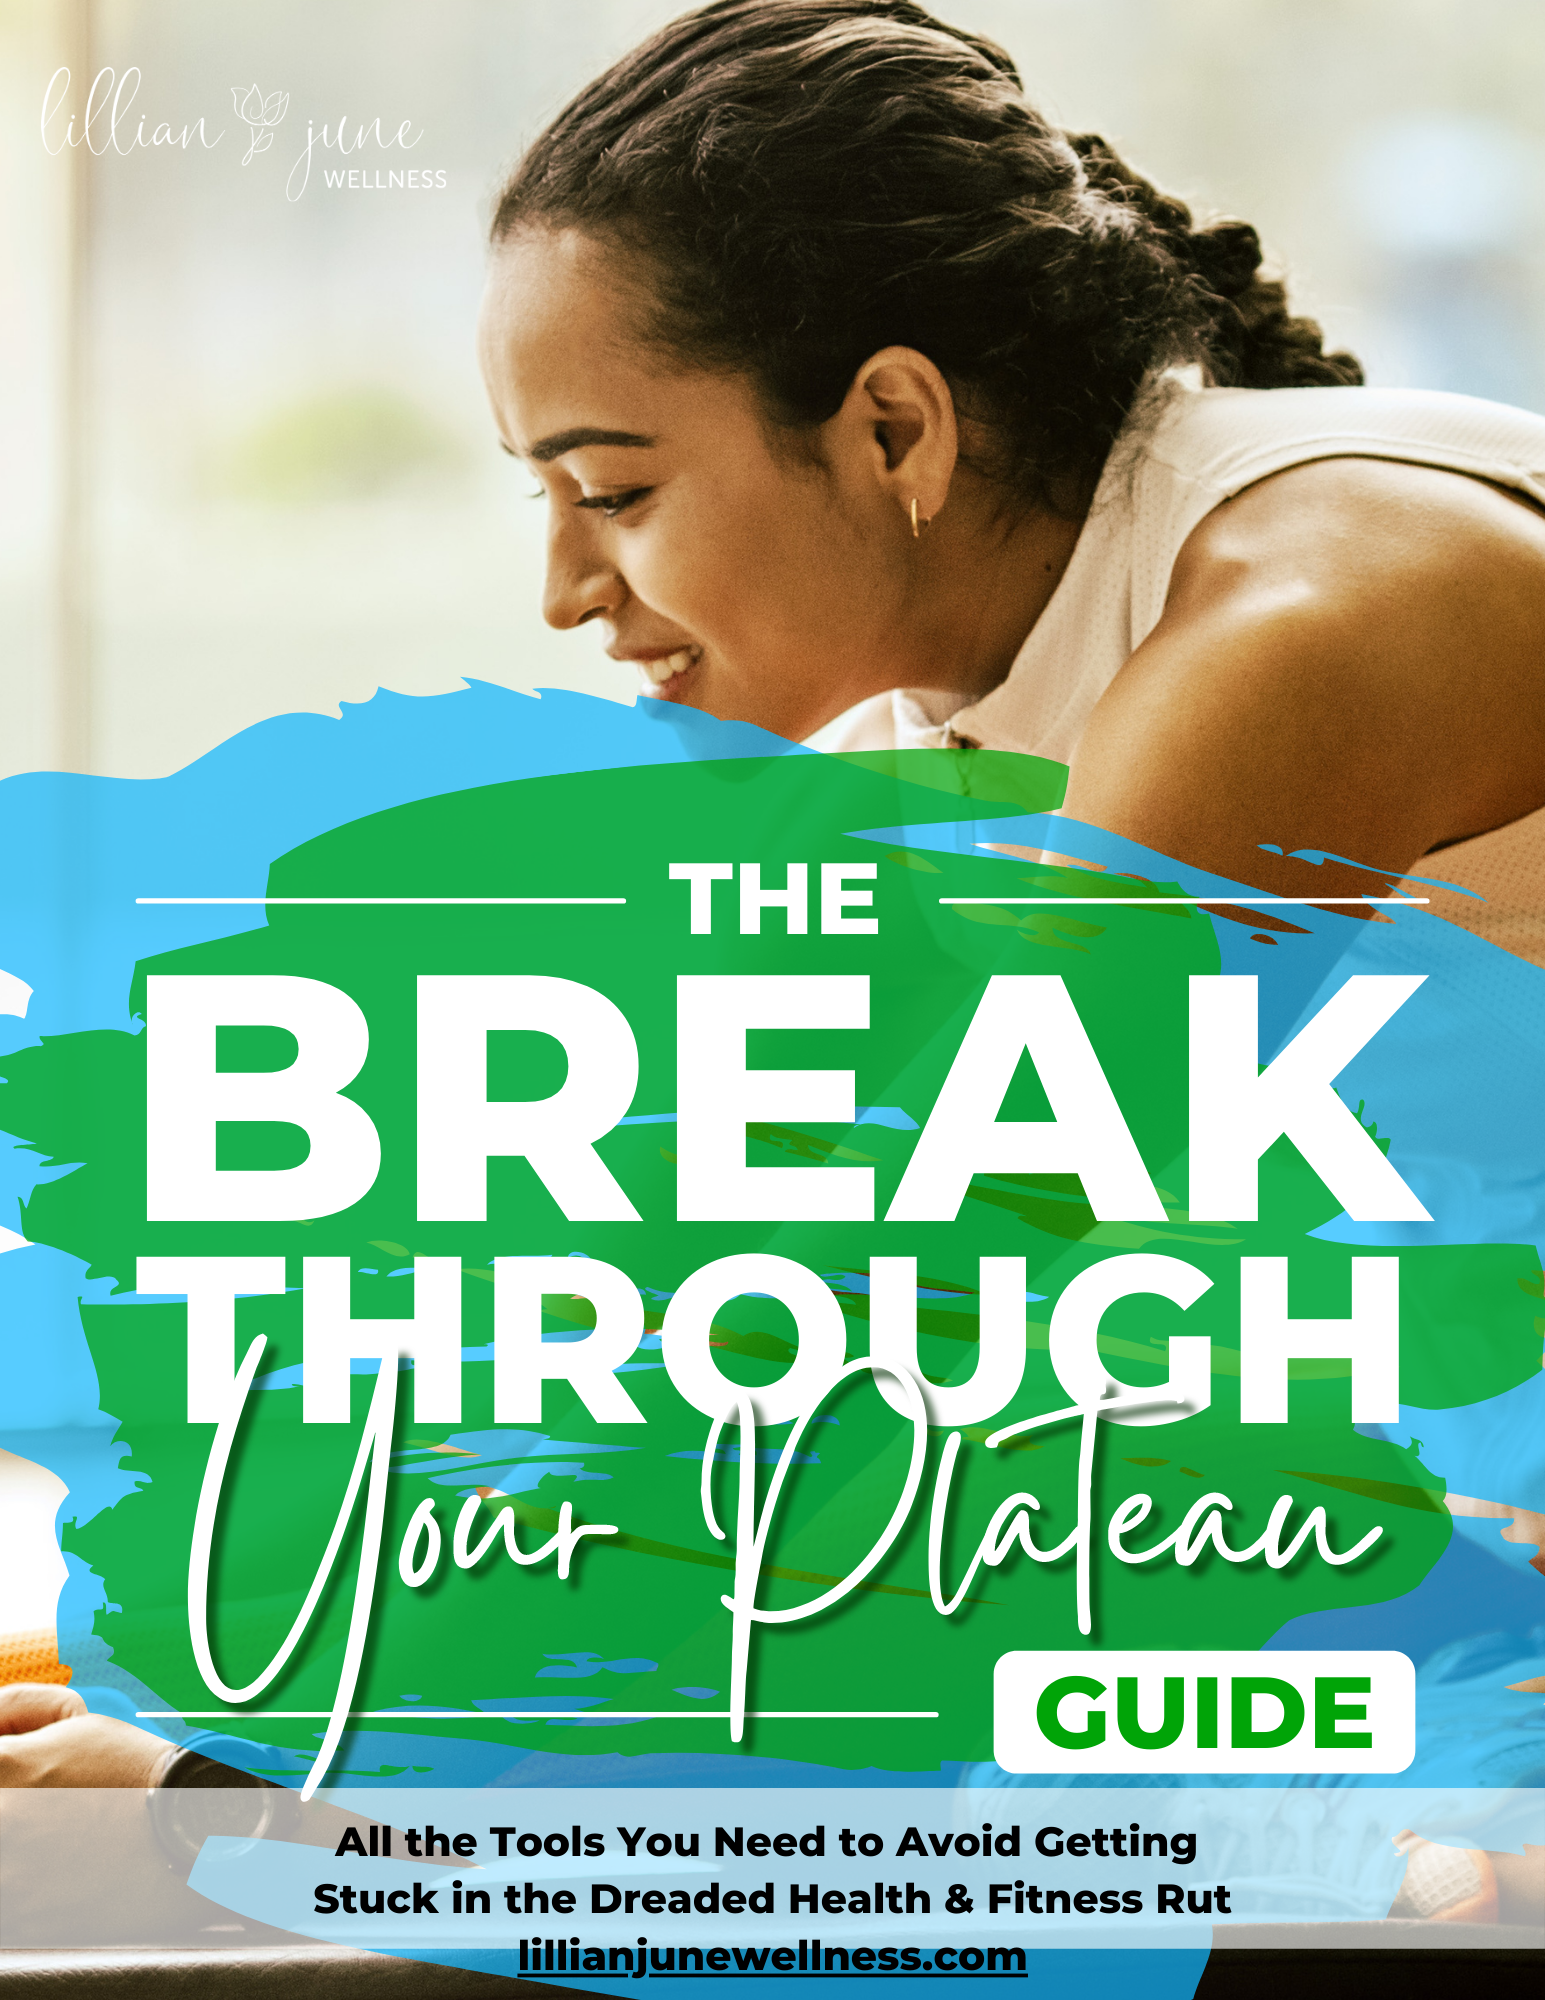 FREE Break Through Your Plateau Guide!